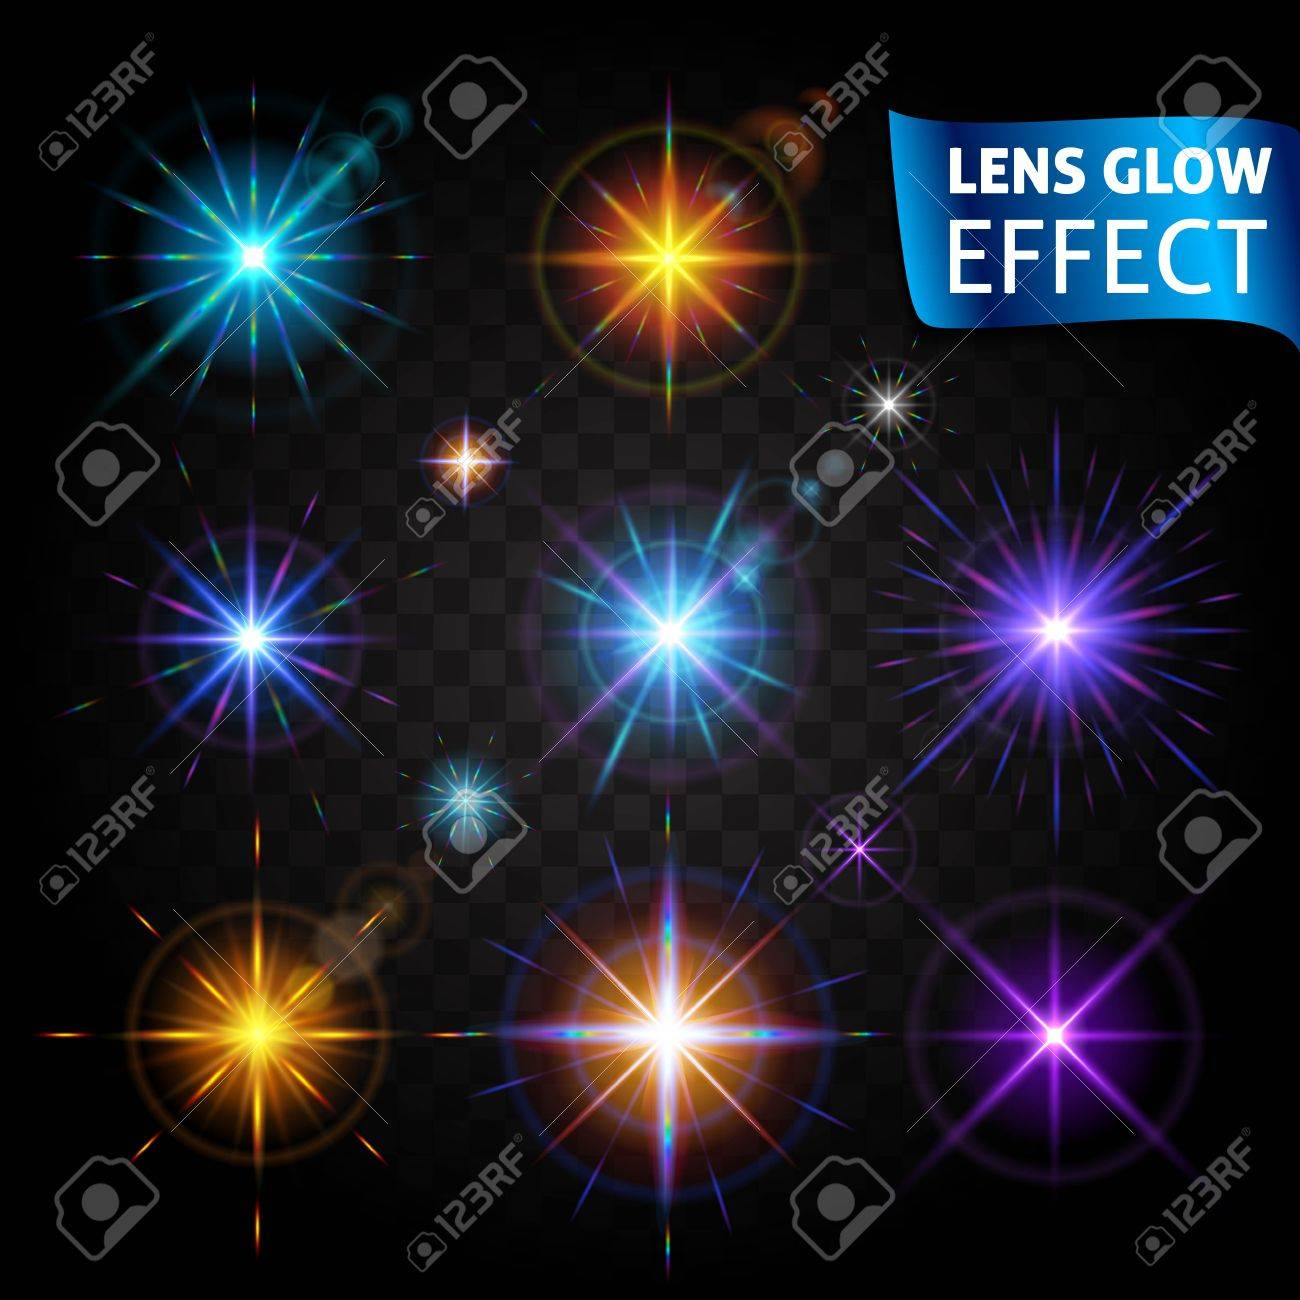 lens glow effect glowing light glare bright realistic lighting